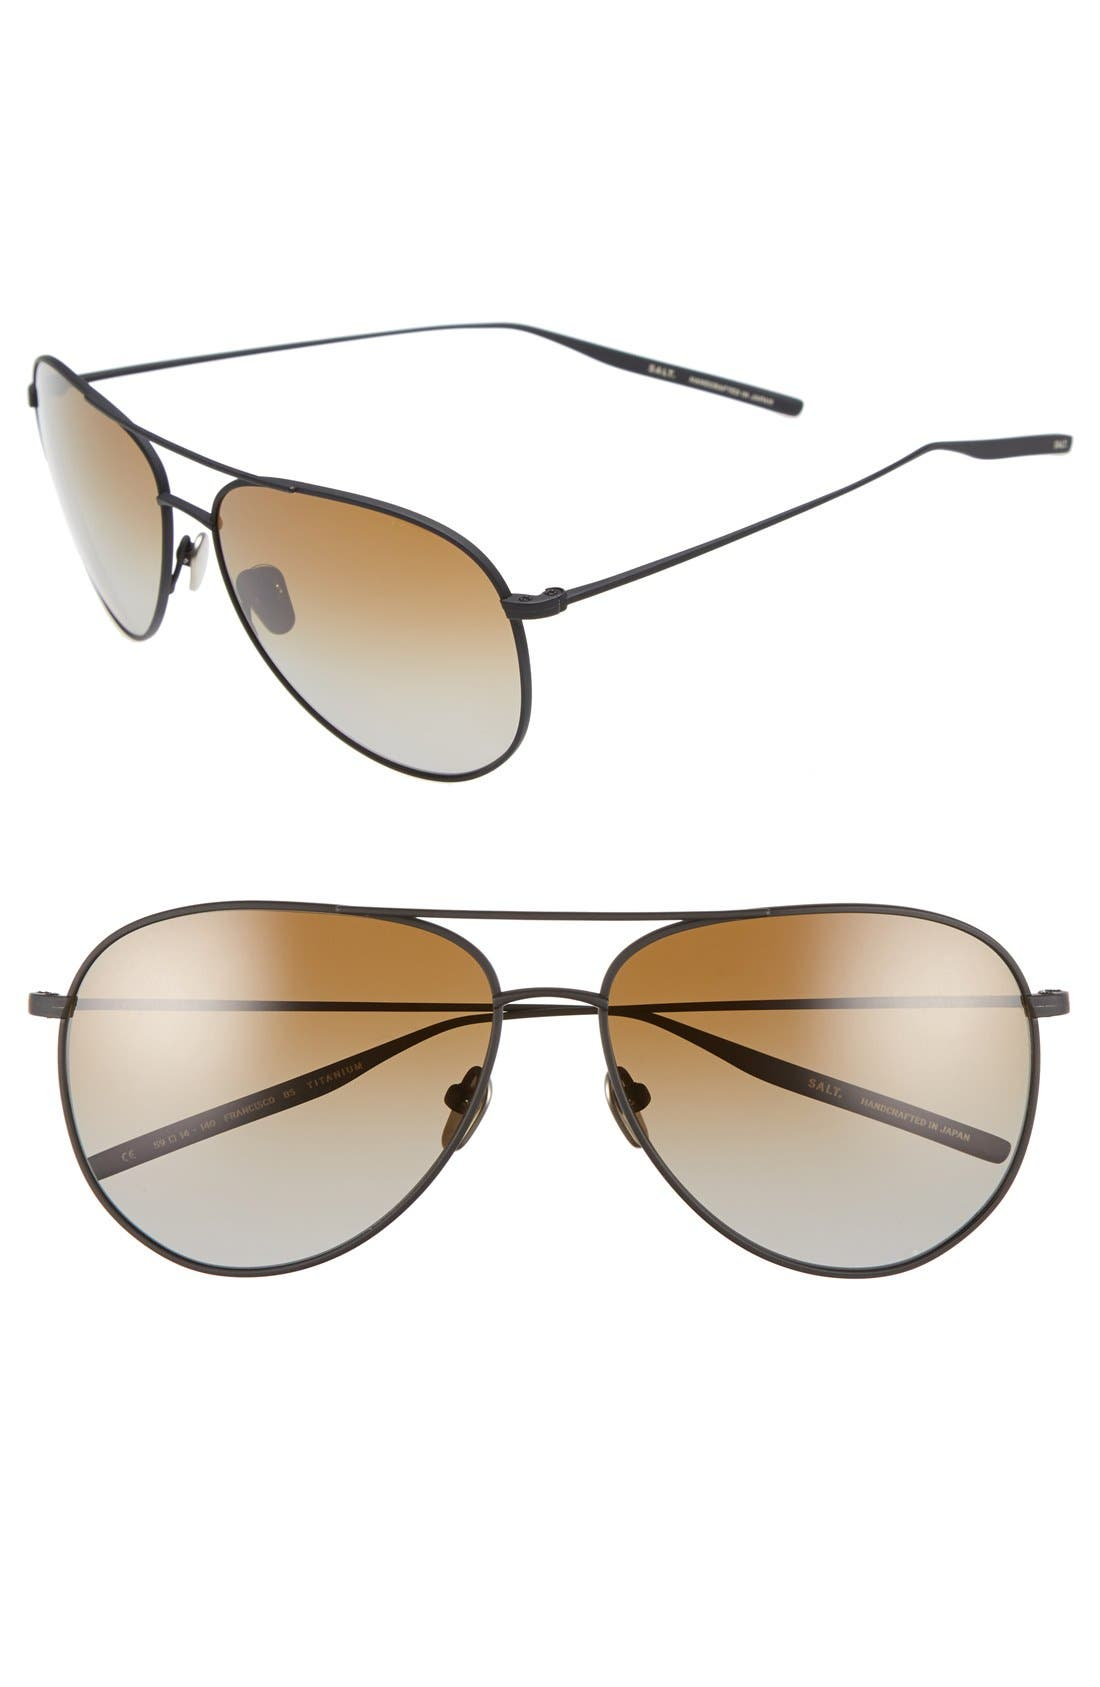 SALT Francisco 59mm Gradient Sunglasses